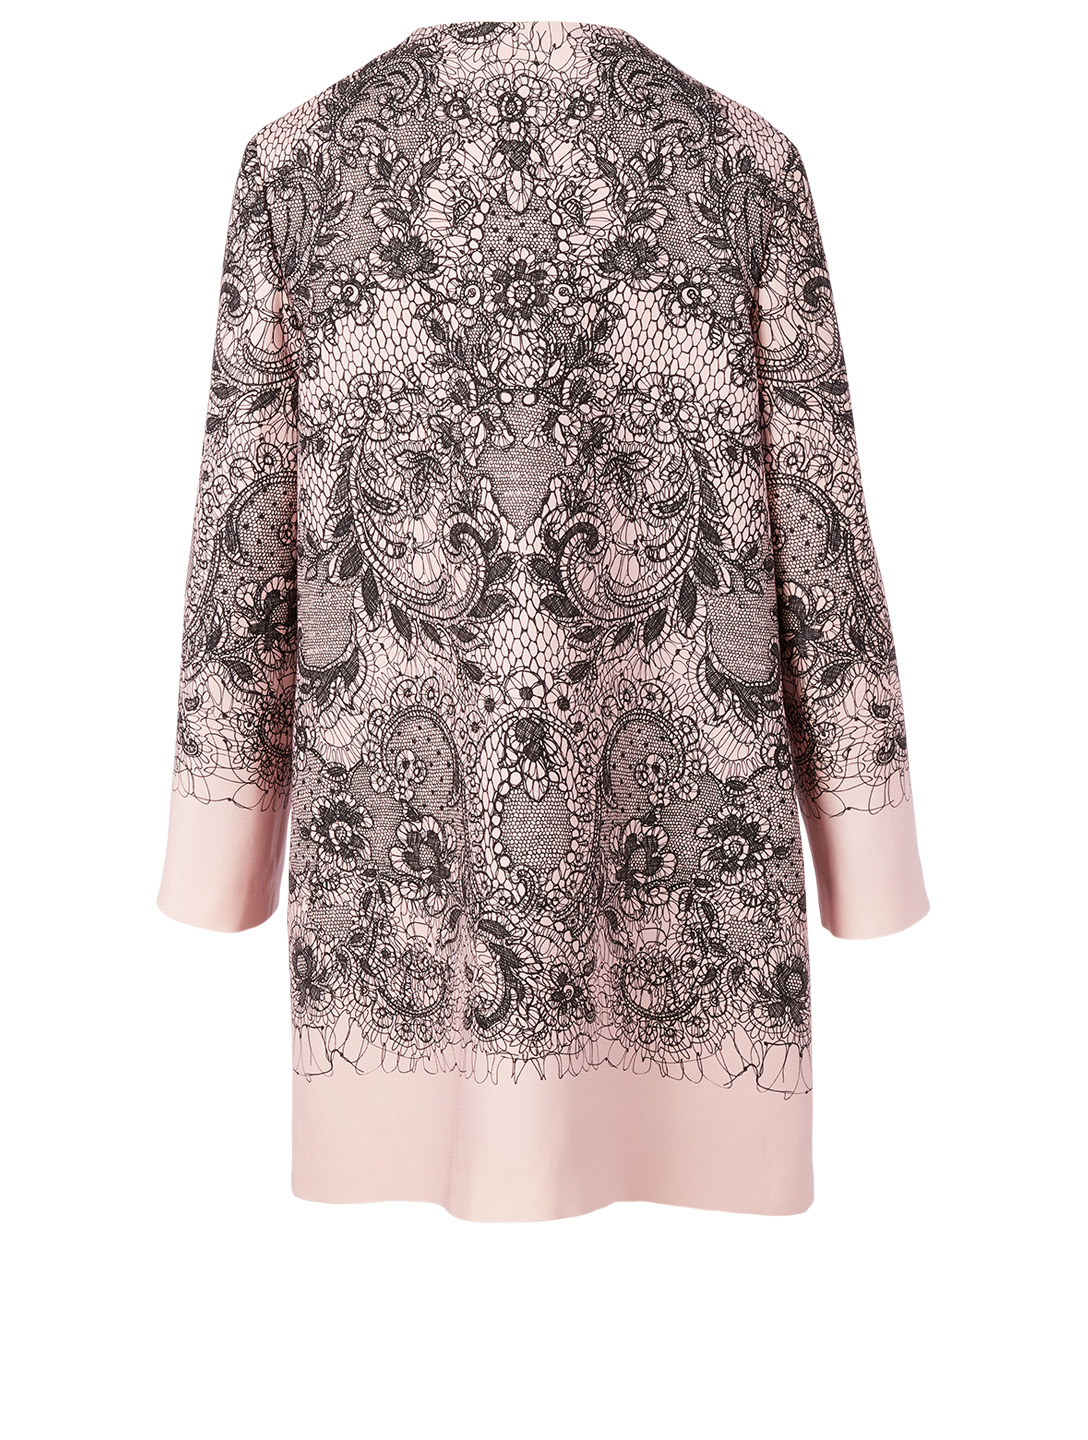 VALENTINO Wool And Silk Coat In Lace Print Women's Pink